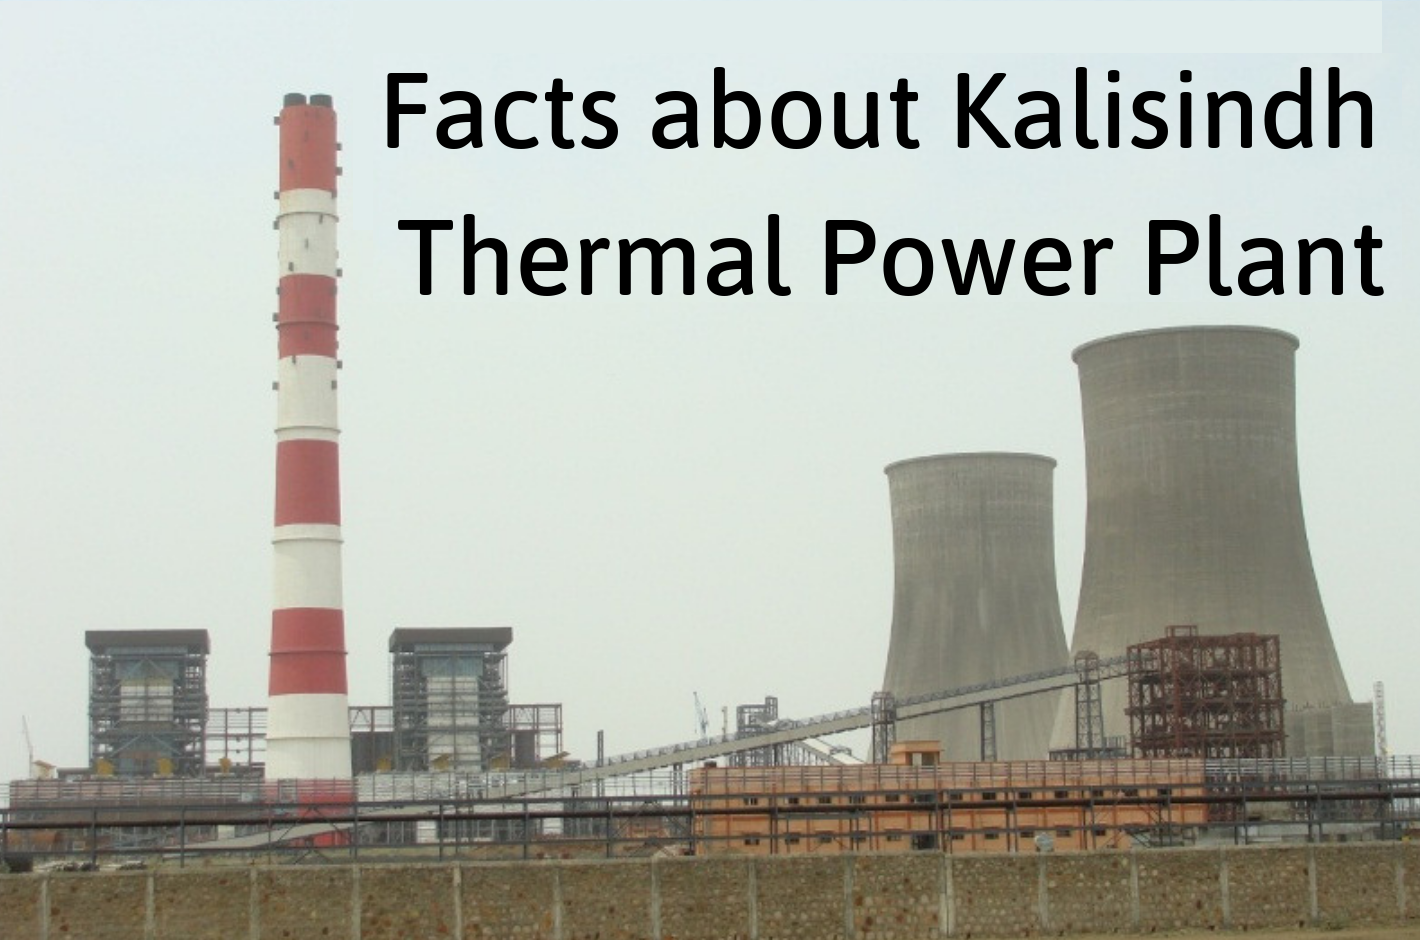 Facts about Kalisindh Thermal Power Plant